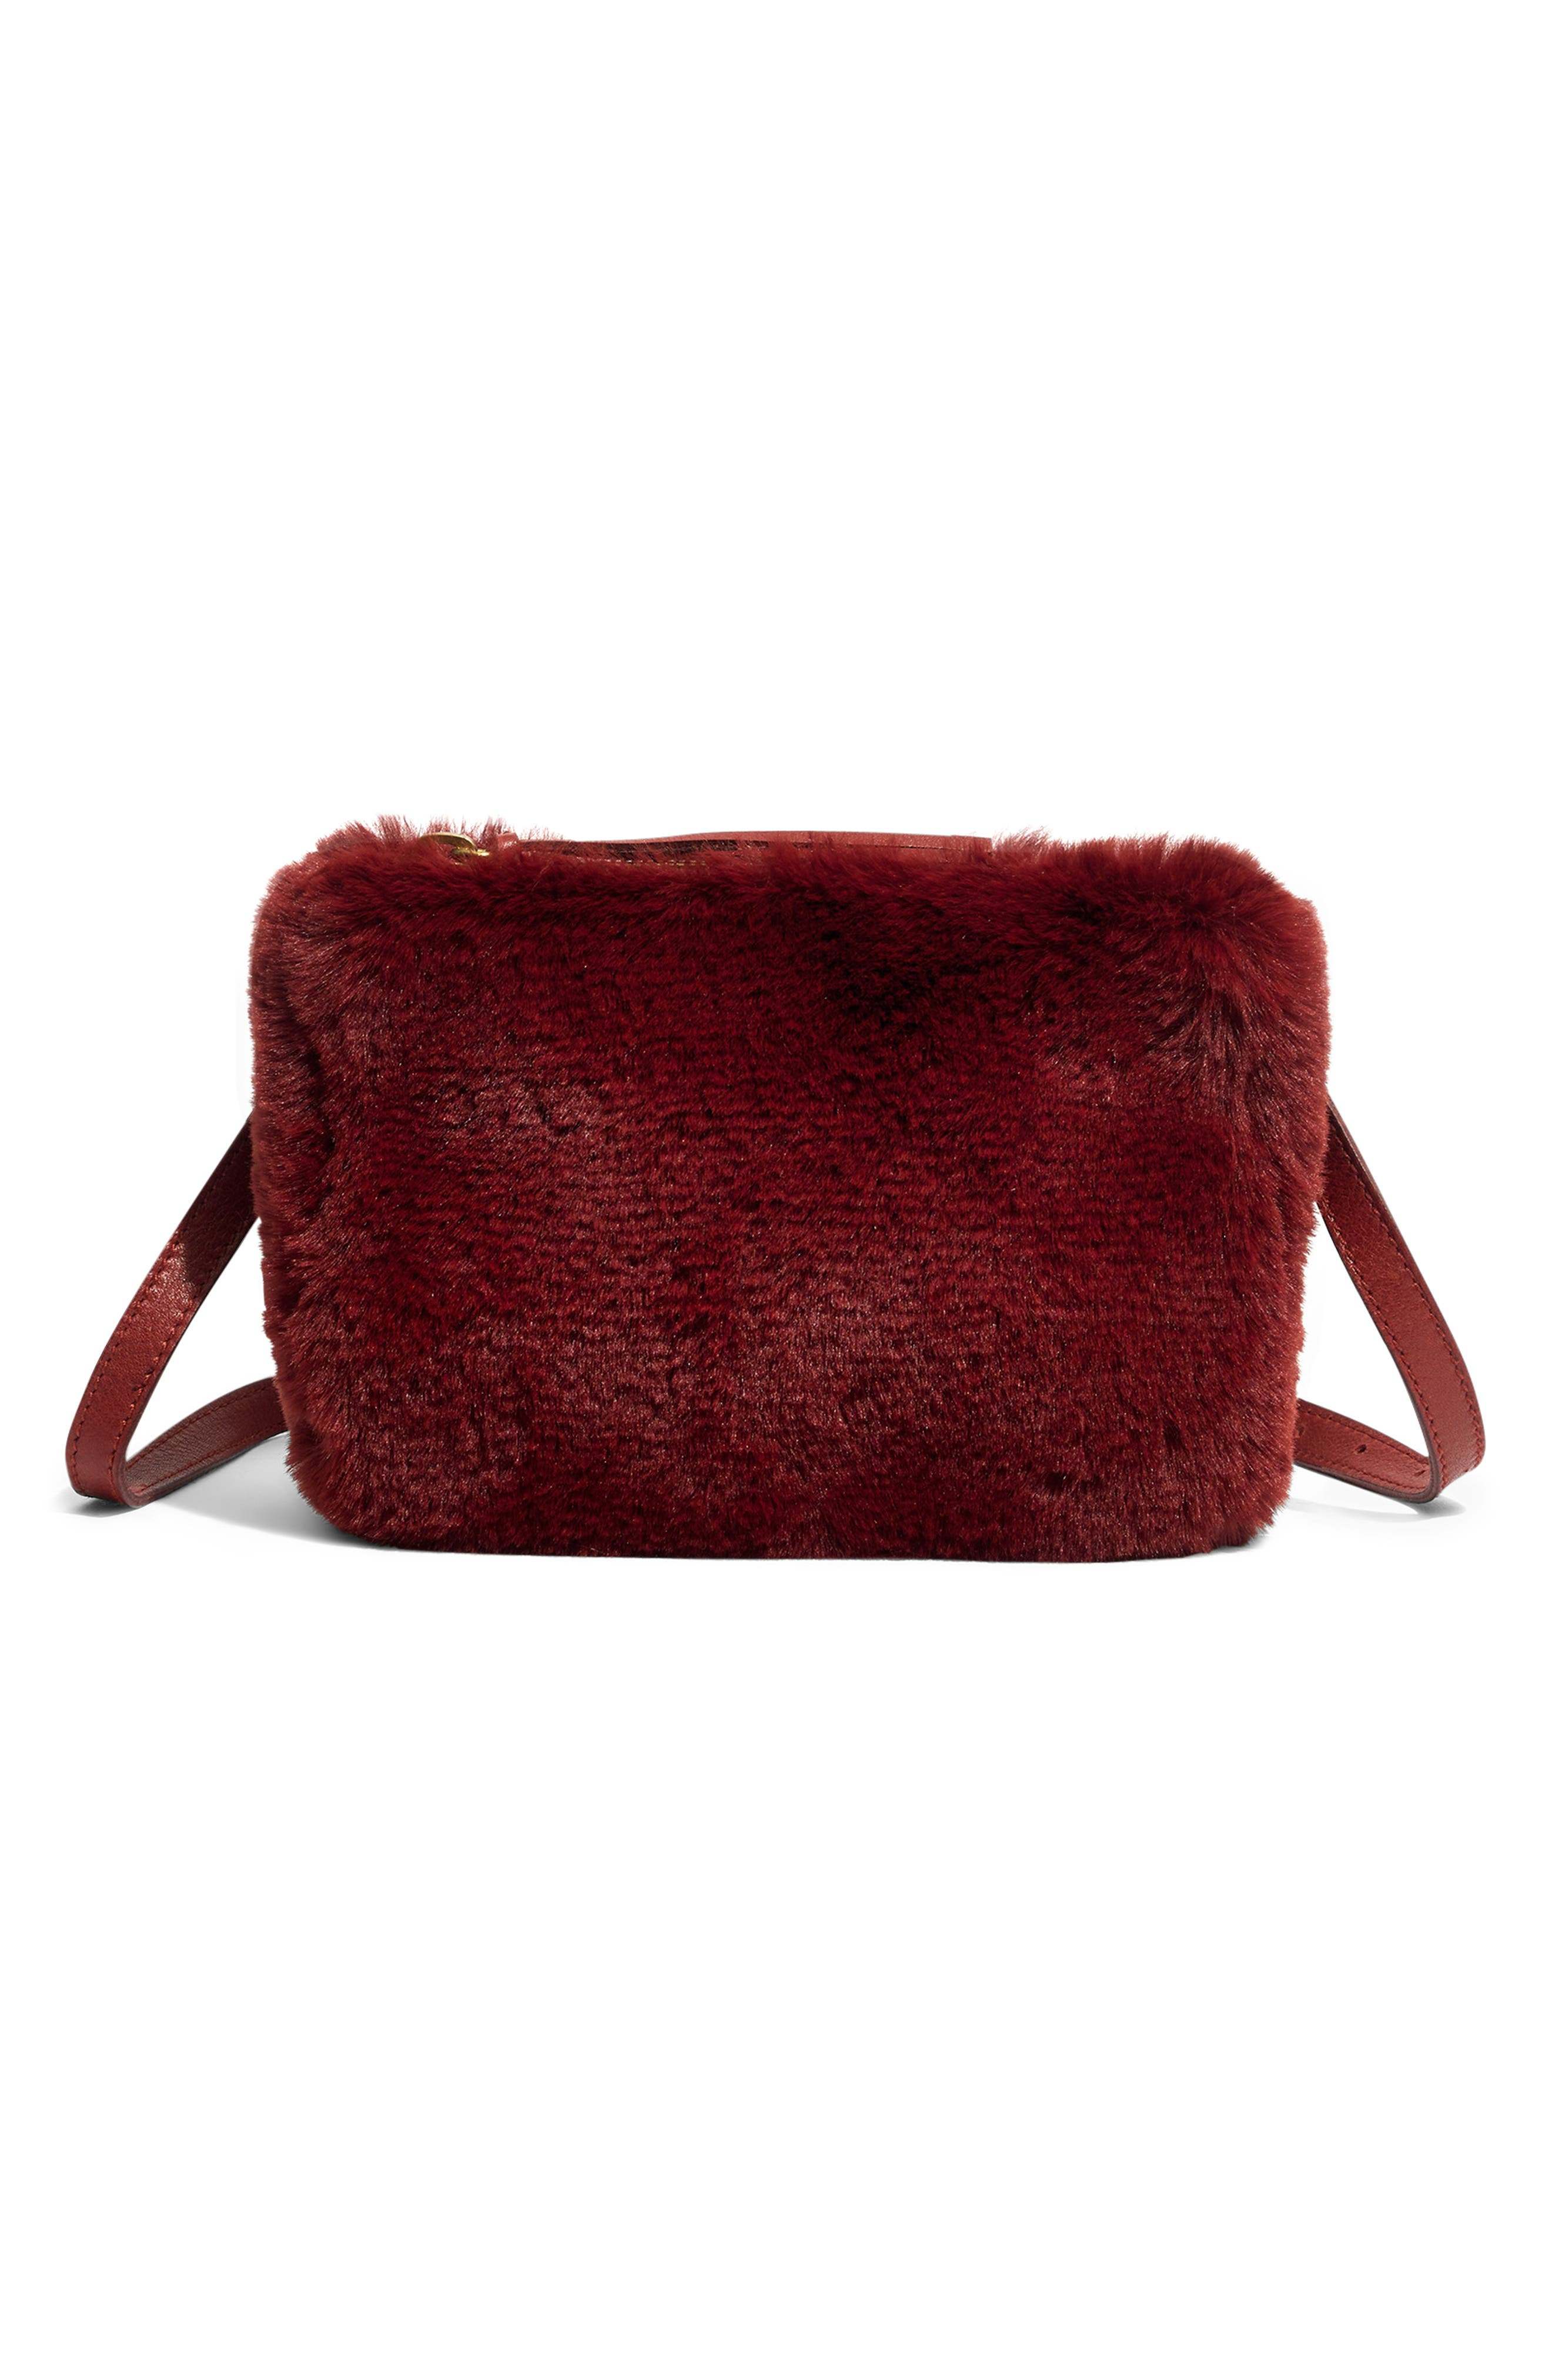 MADEWELL,                             The Simple Pouch Faux Fur Belt Bag,                             Main thumbnail 1, color,                             600